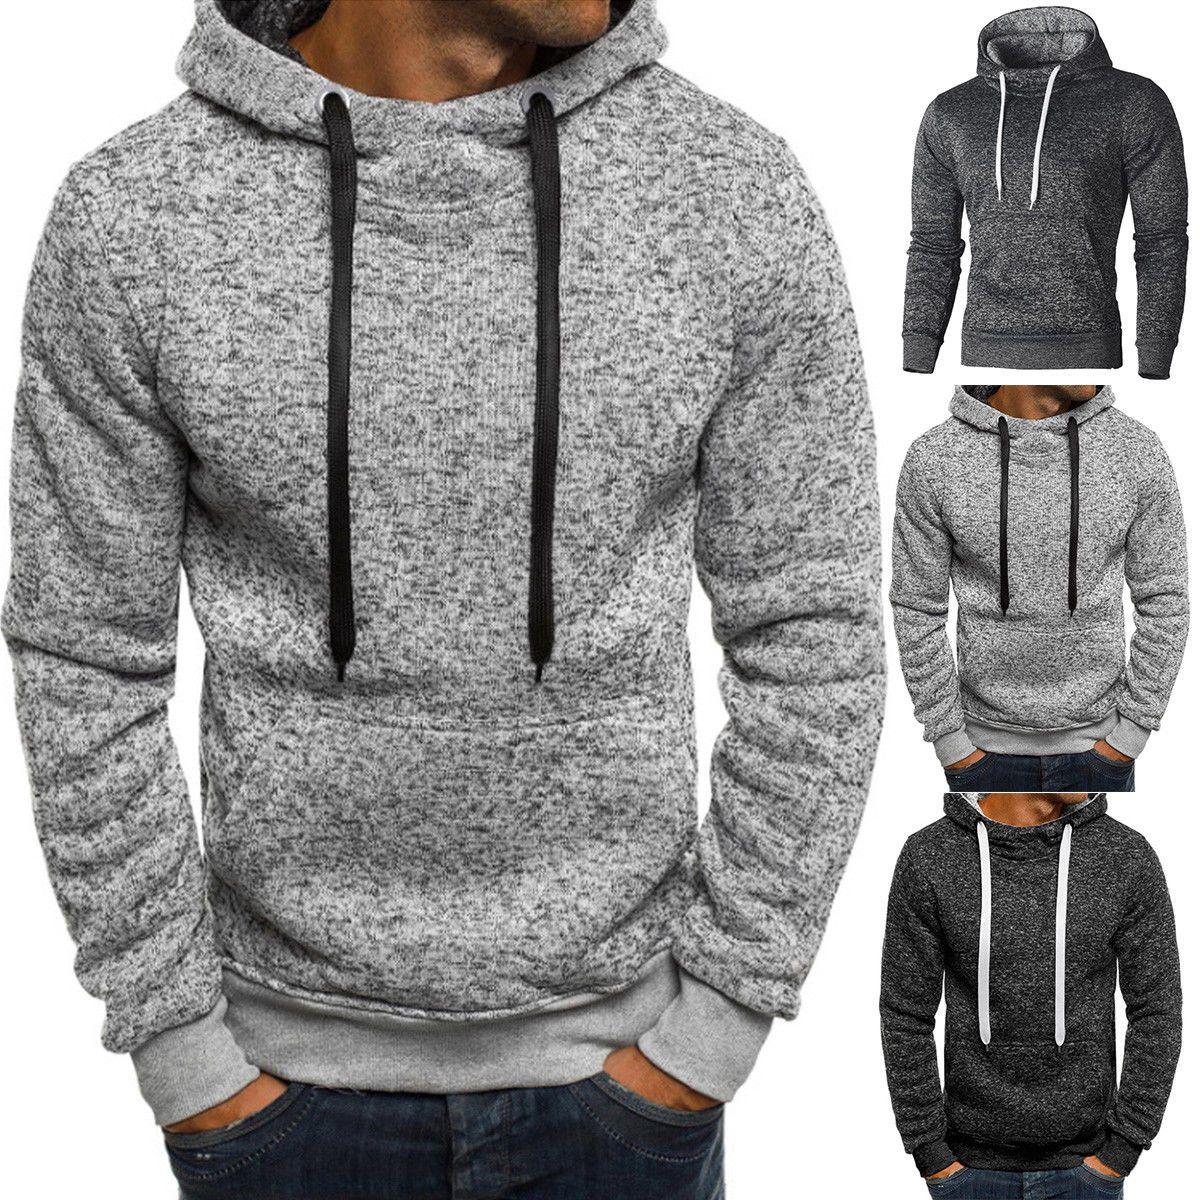 Men/'s Winter Slim Zip Hoodies Warm Hooded Sweatshirt Coat Jacket Outwear Sweater